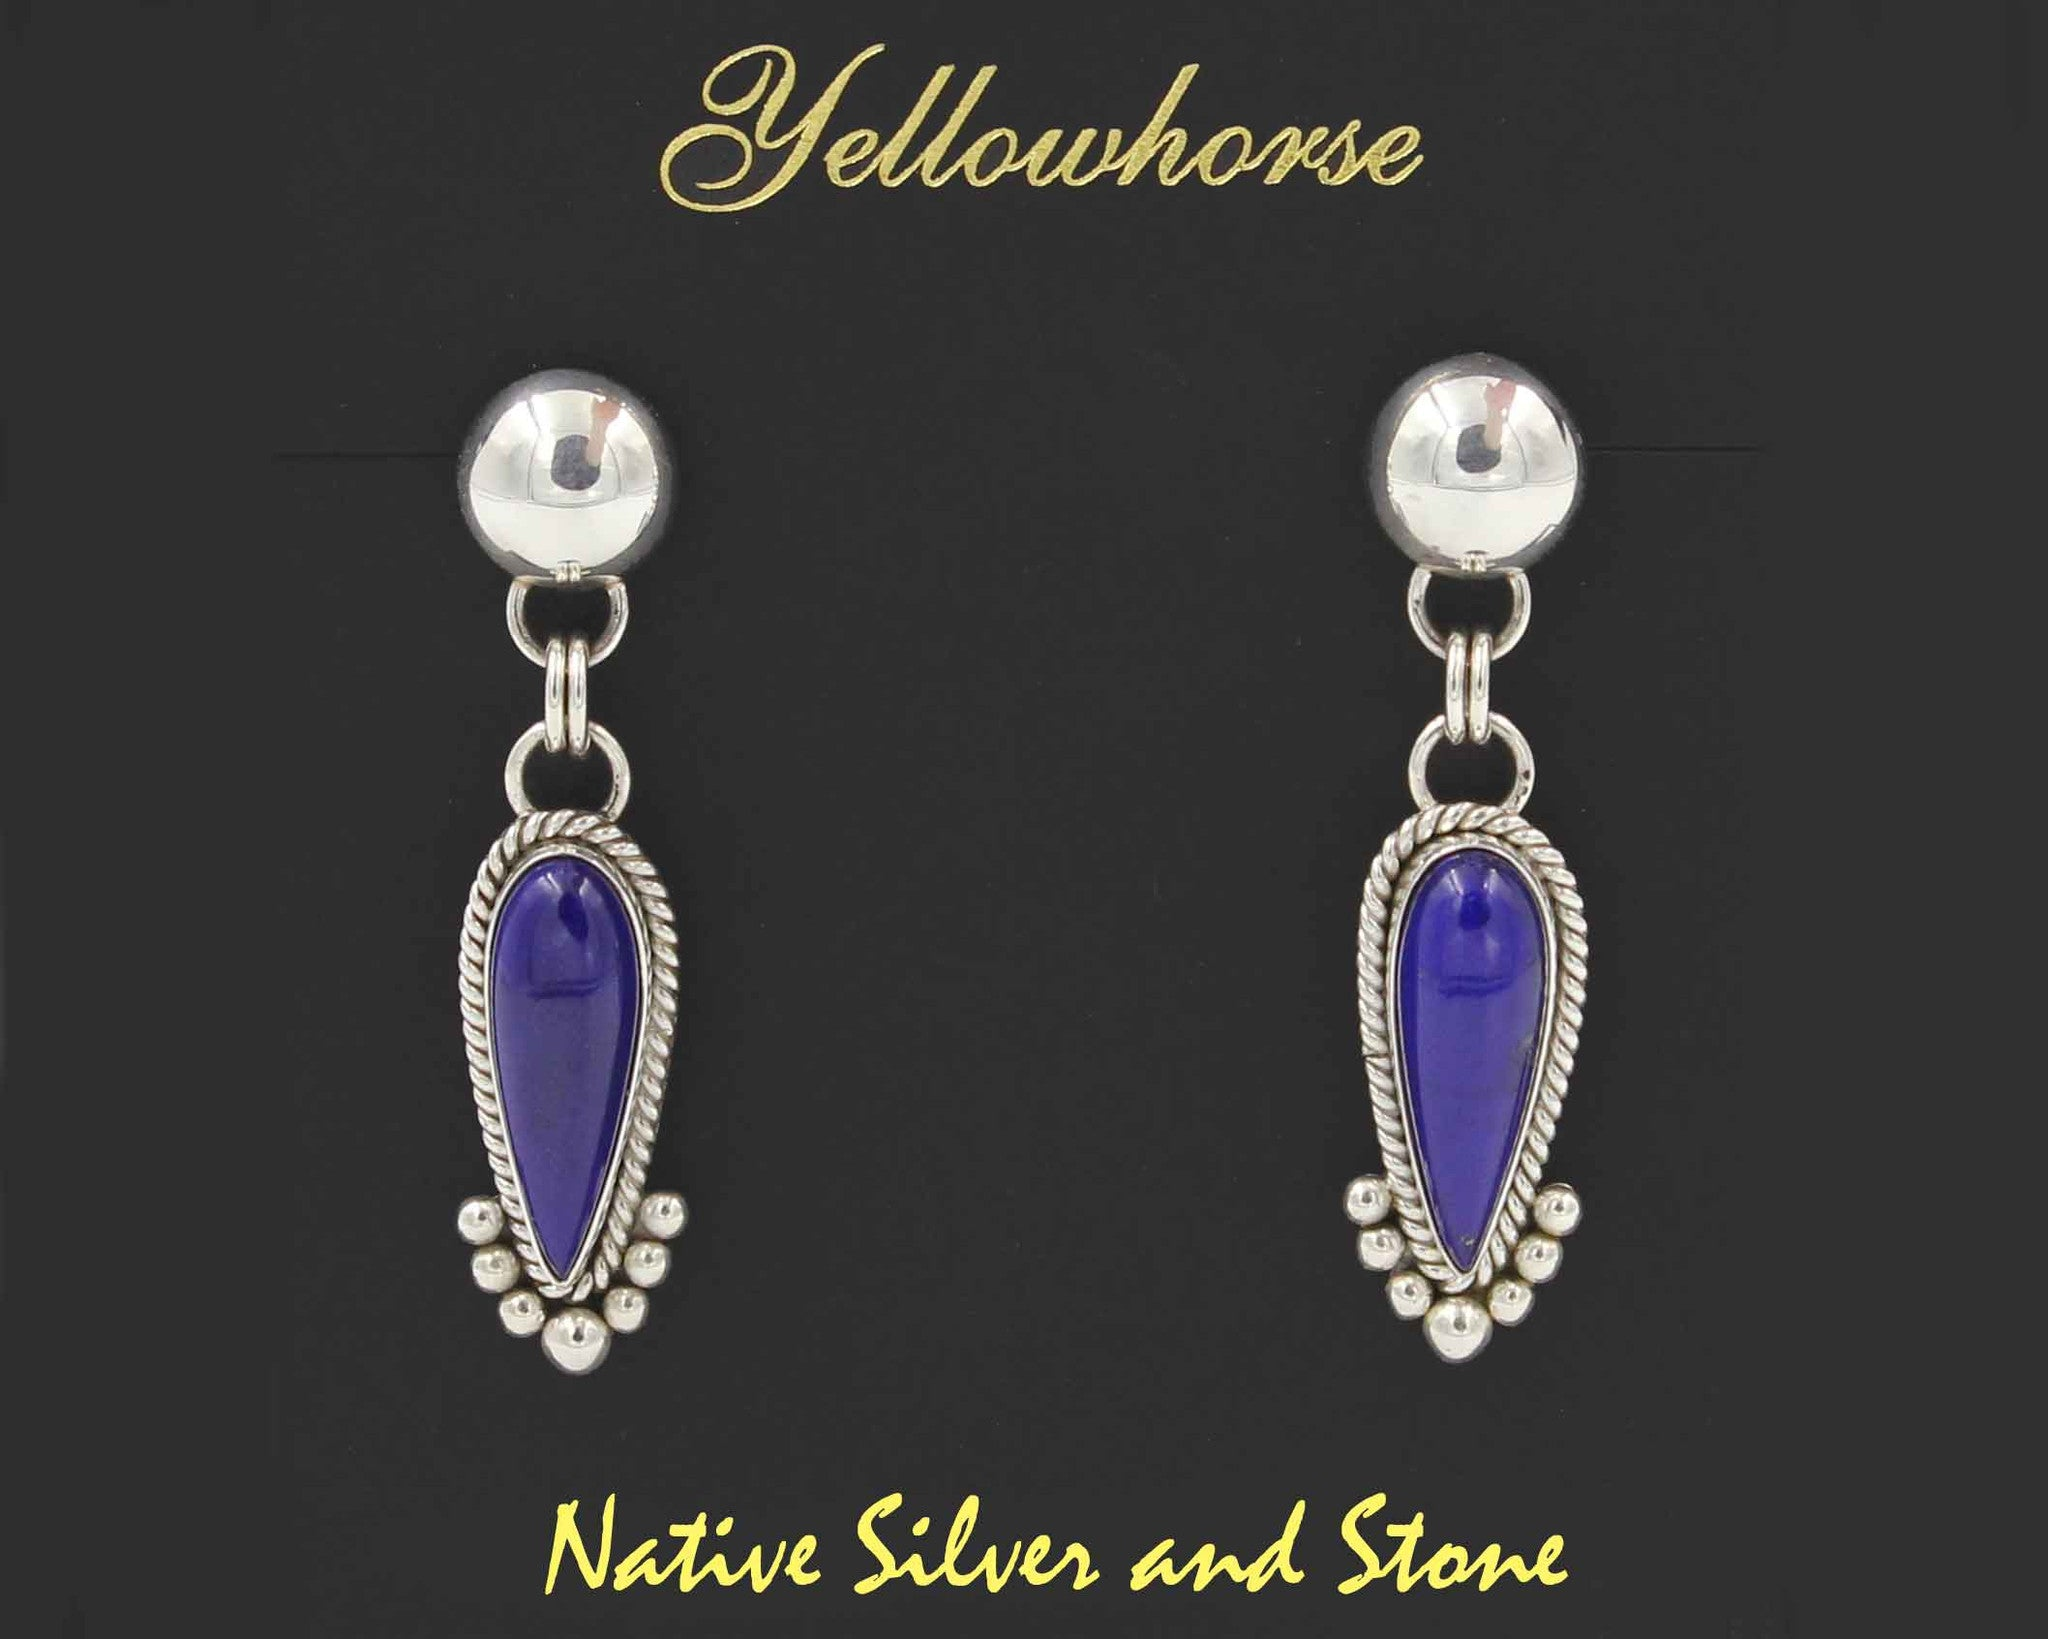 my if i native it take repair american jewelry repairing them in out img by repairs speciallty any to order stones jerome the jewellery have part has silver poyer